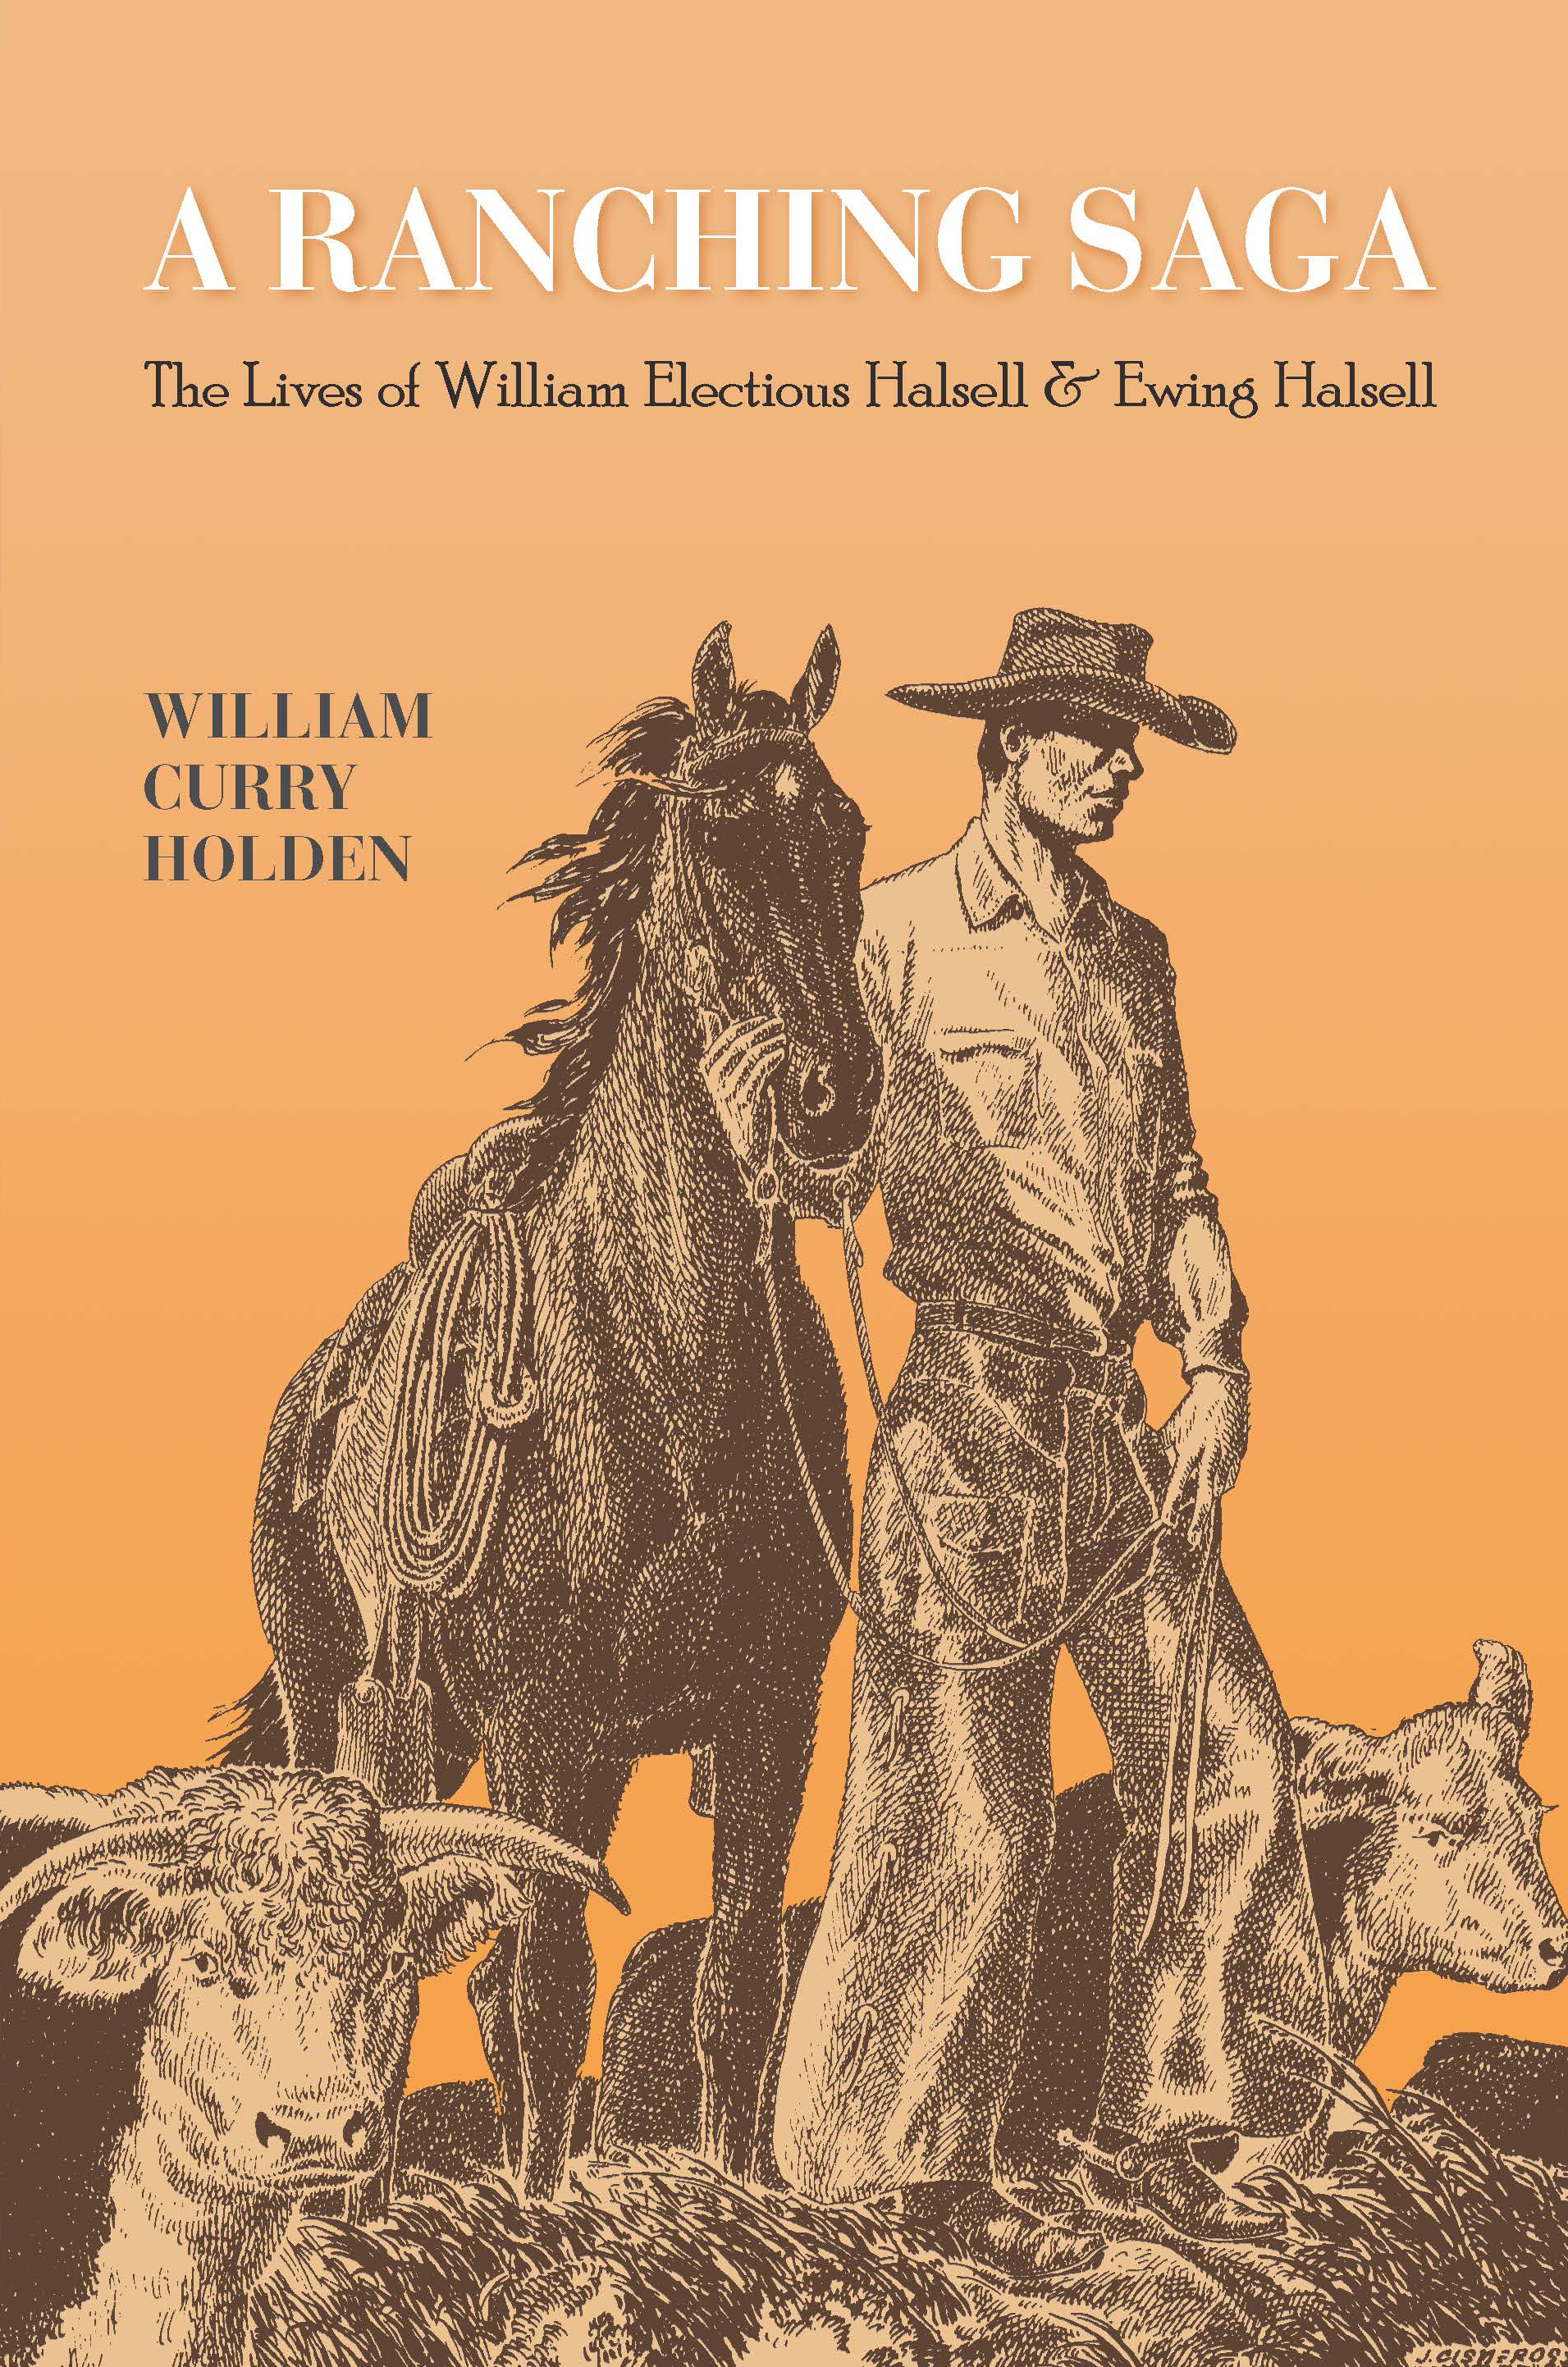 - In honor of the 60th anniversary of the Ewing Halsell Foundation, this Second Edition of A Ranching Saga- The Lives of William Electious Halsell and Ewing Halsell is available electronically and in print.To learn more or to obtain your copy, please